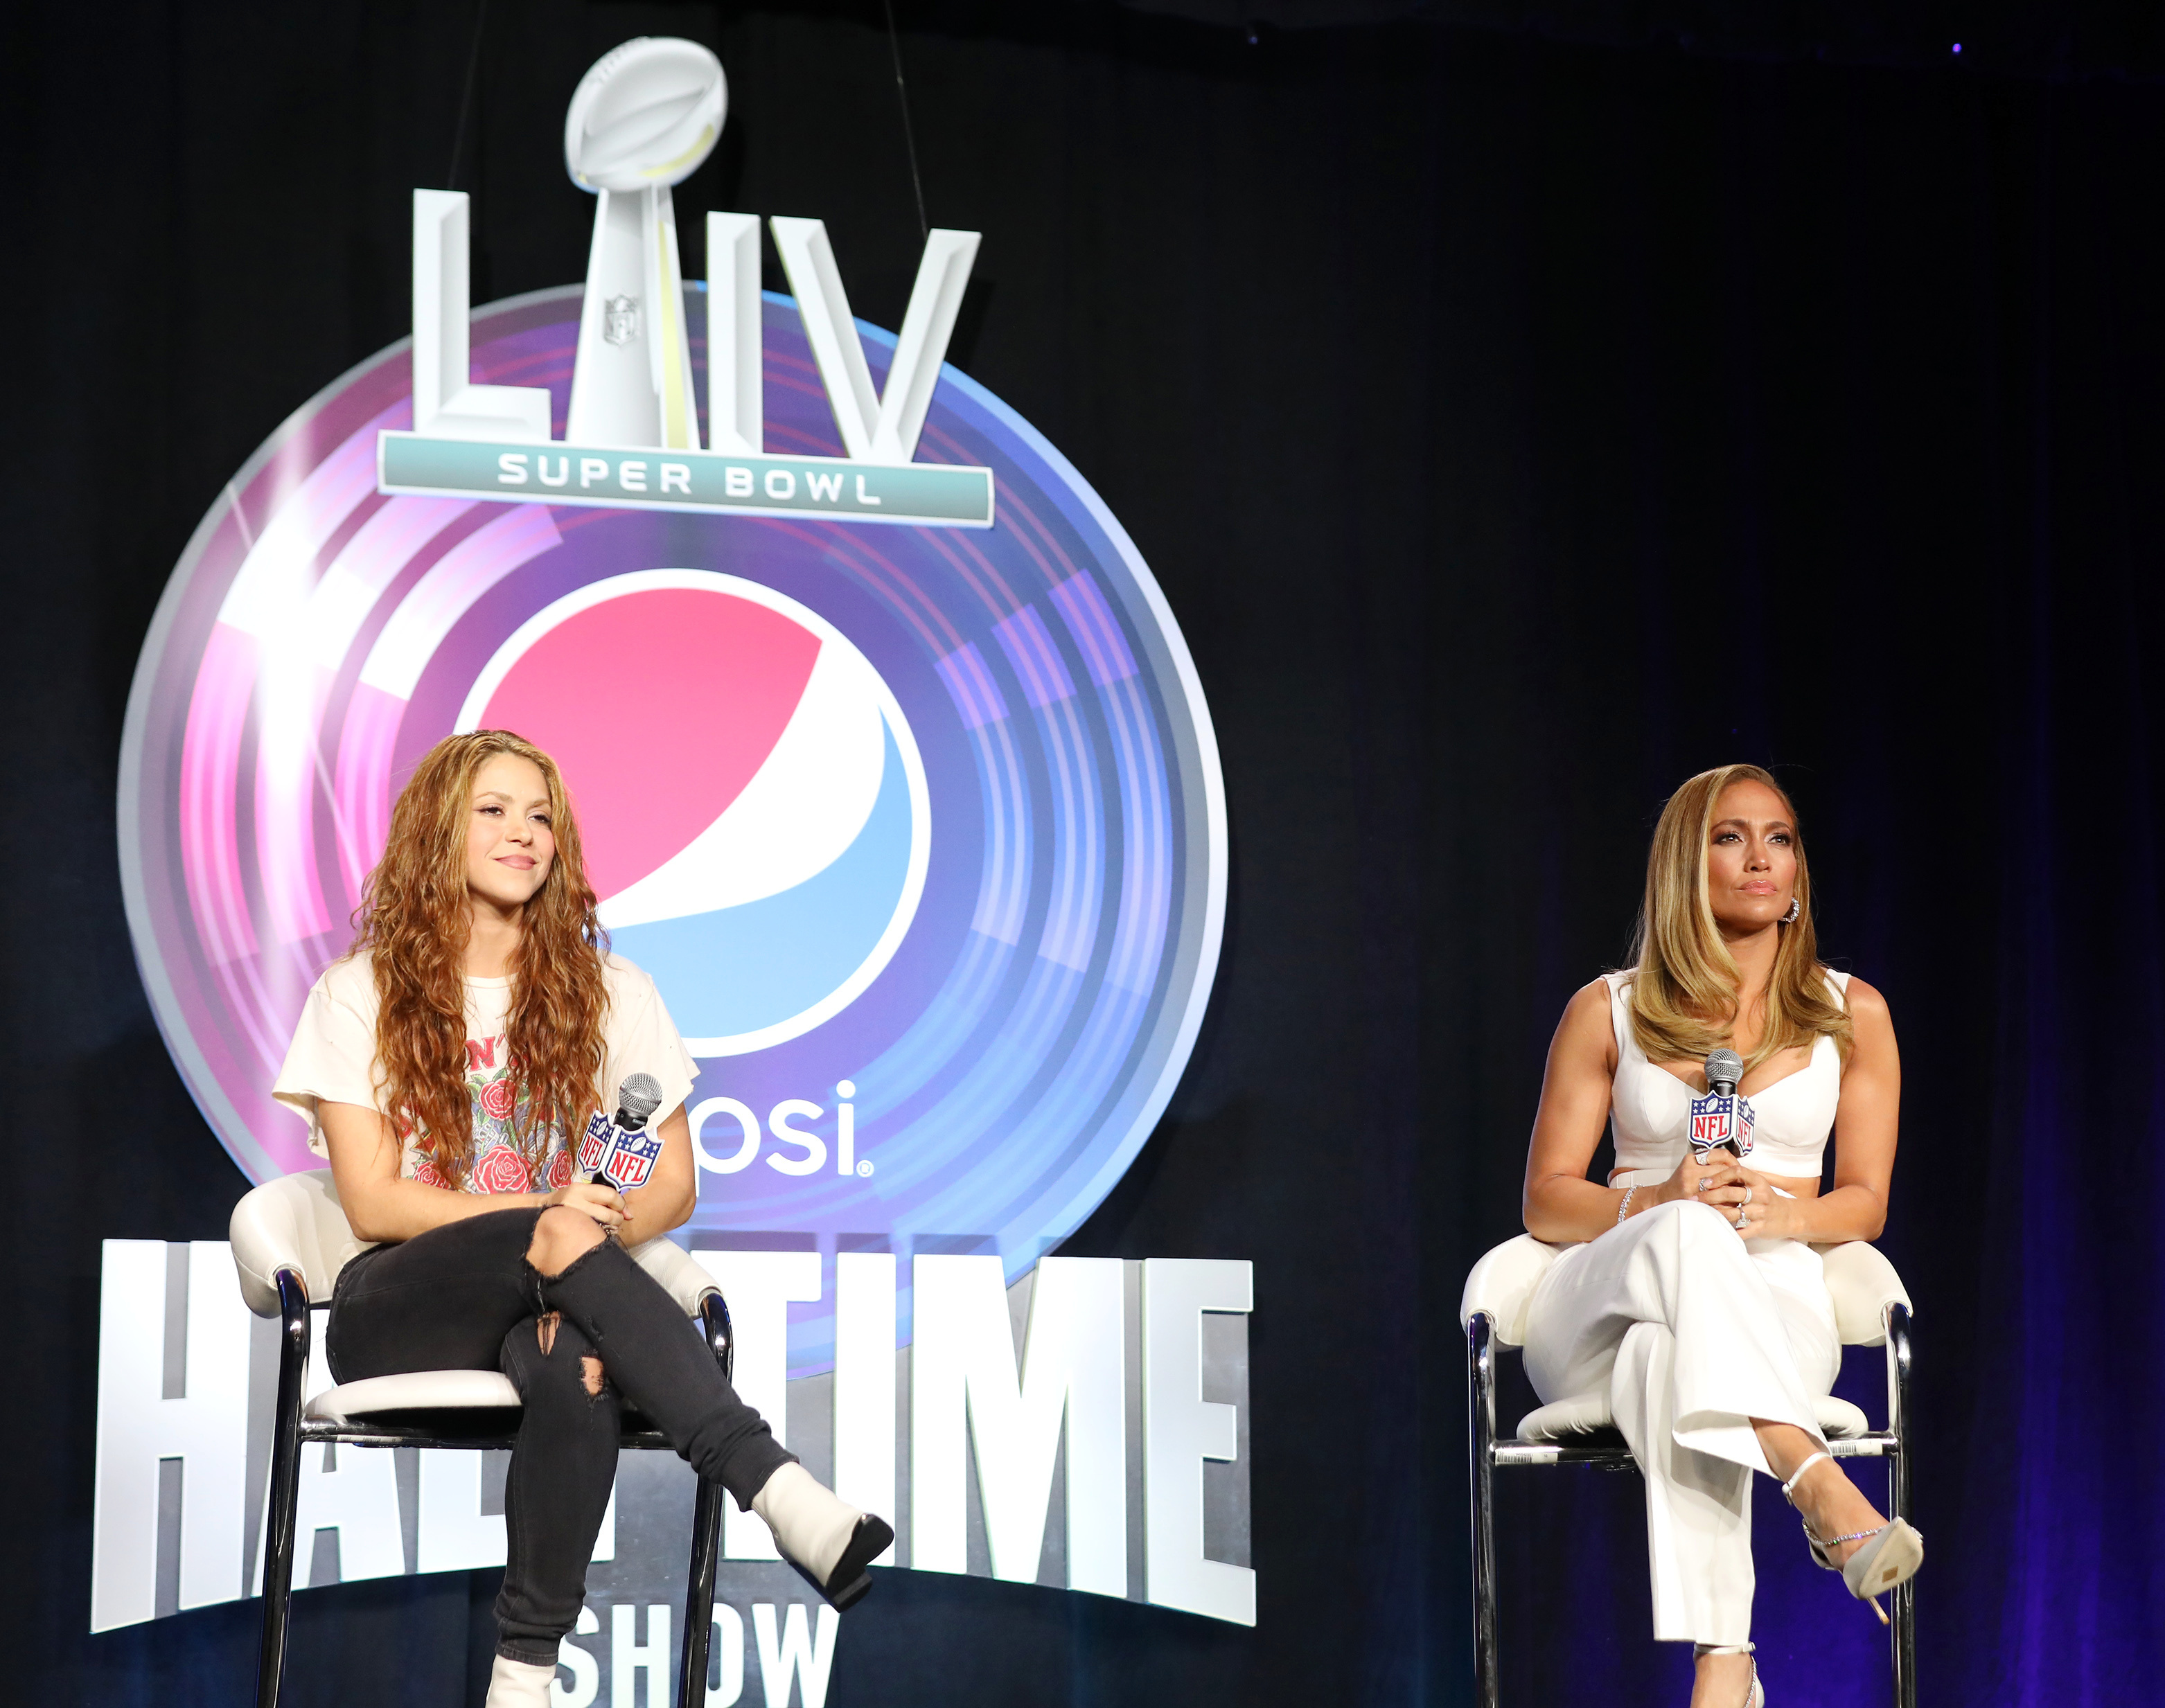 Pepsi Super Bowl LIV Halftime Show Press Conference